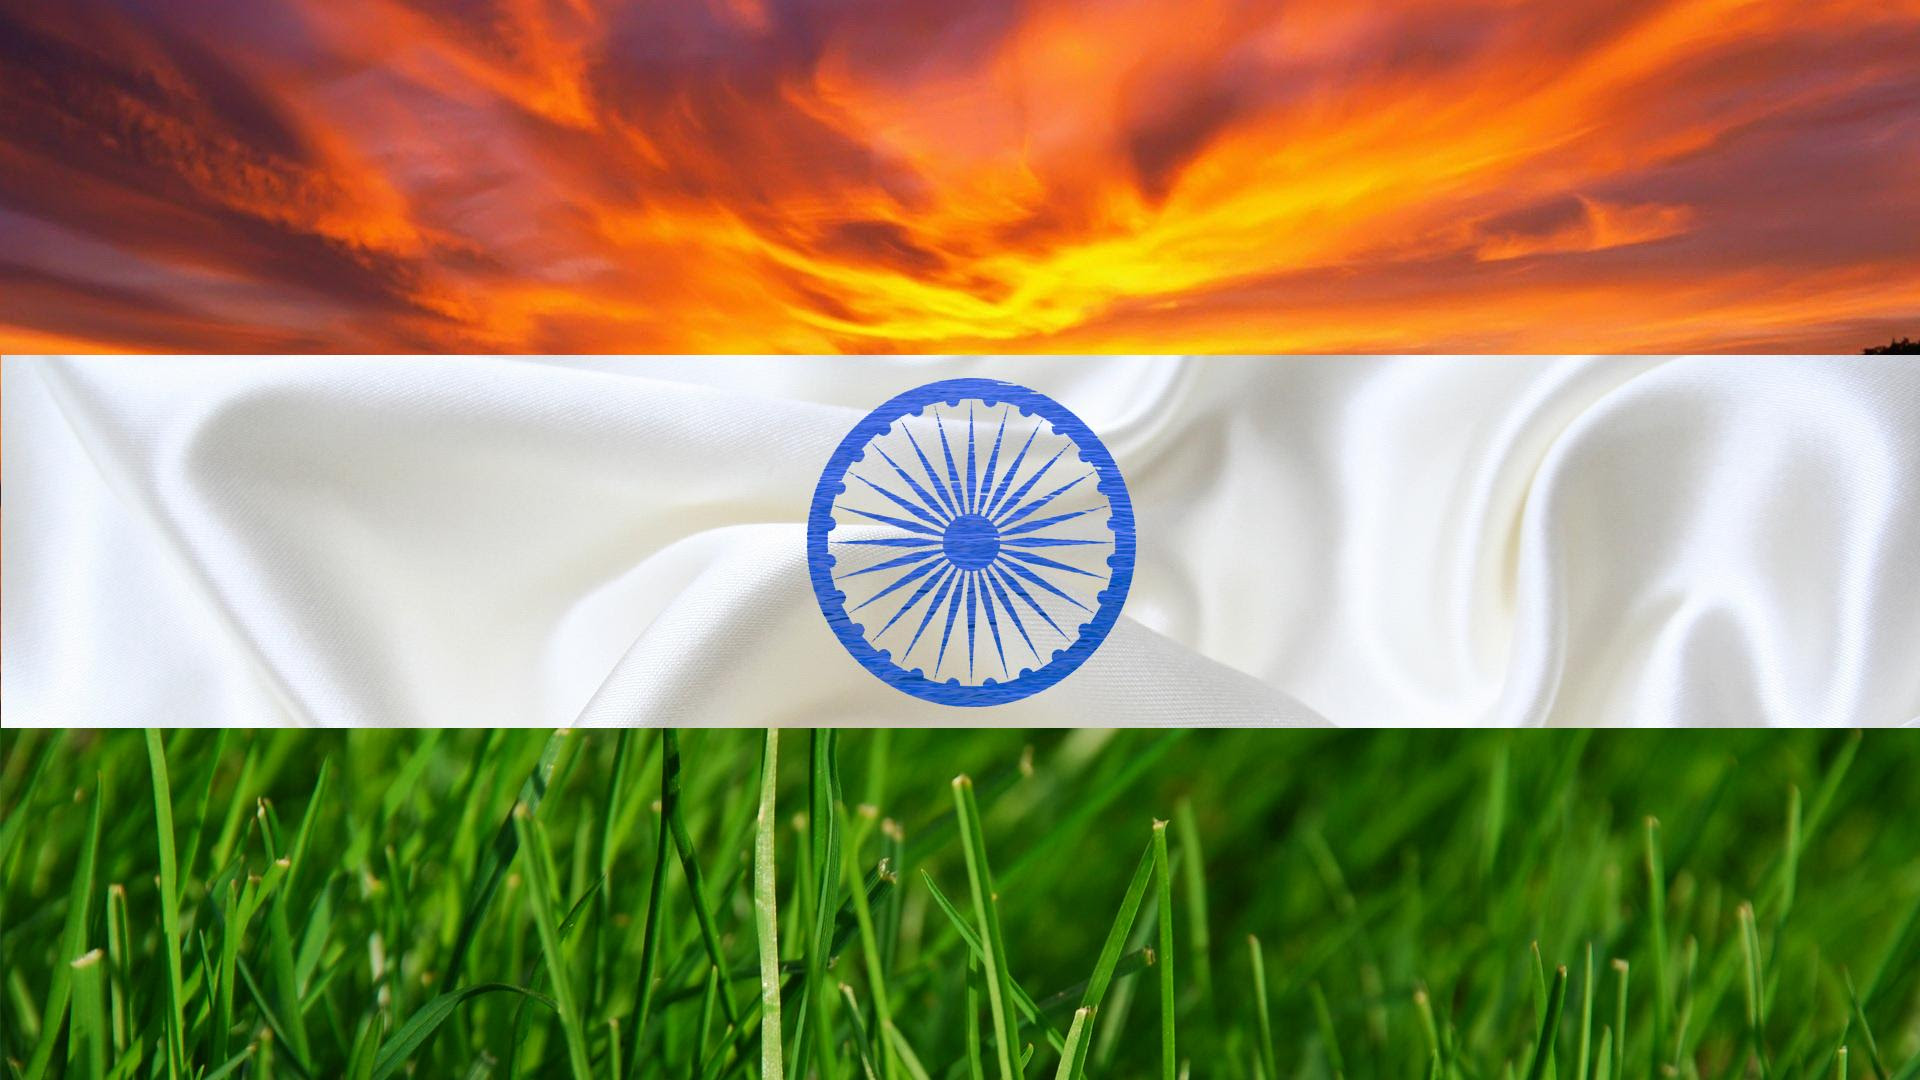 Indian Flag Hd Images For Whatsapp Dp Profile Wallpapers For Fb